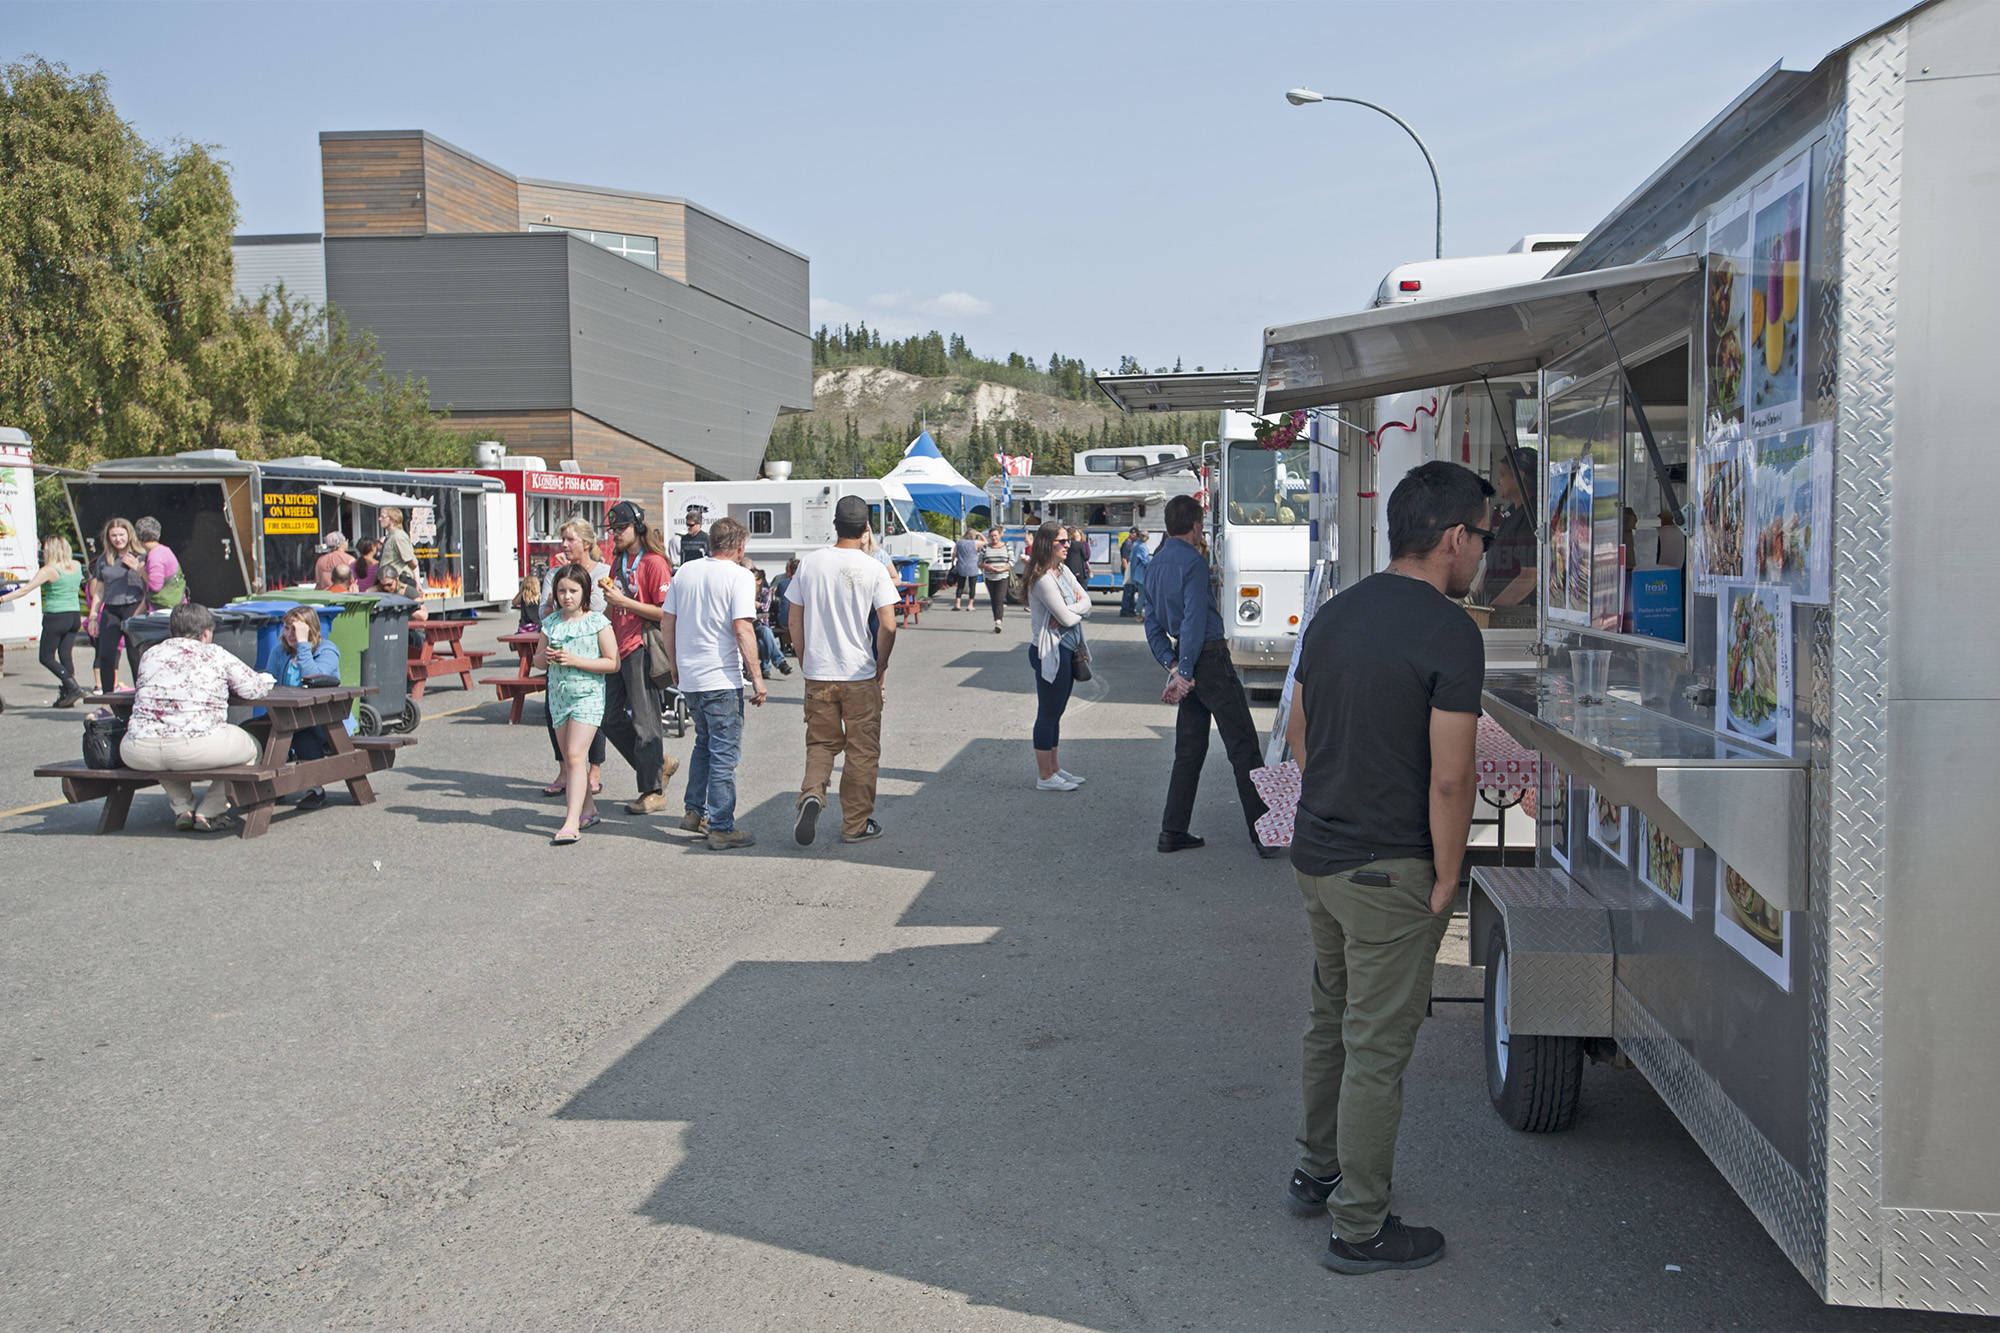 Food trucks gather on Steele Street between Front and Second for the annual Street Eats Festival in August 2019. A new partnership between the Yukon Arts Centre and City of Whitehorse will bring the community the Street Eats & Beats Cultural Festival in September. (Julien Gignac/Yukon News file)